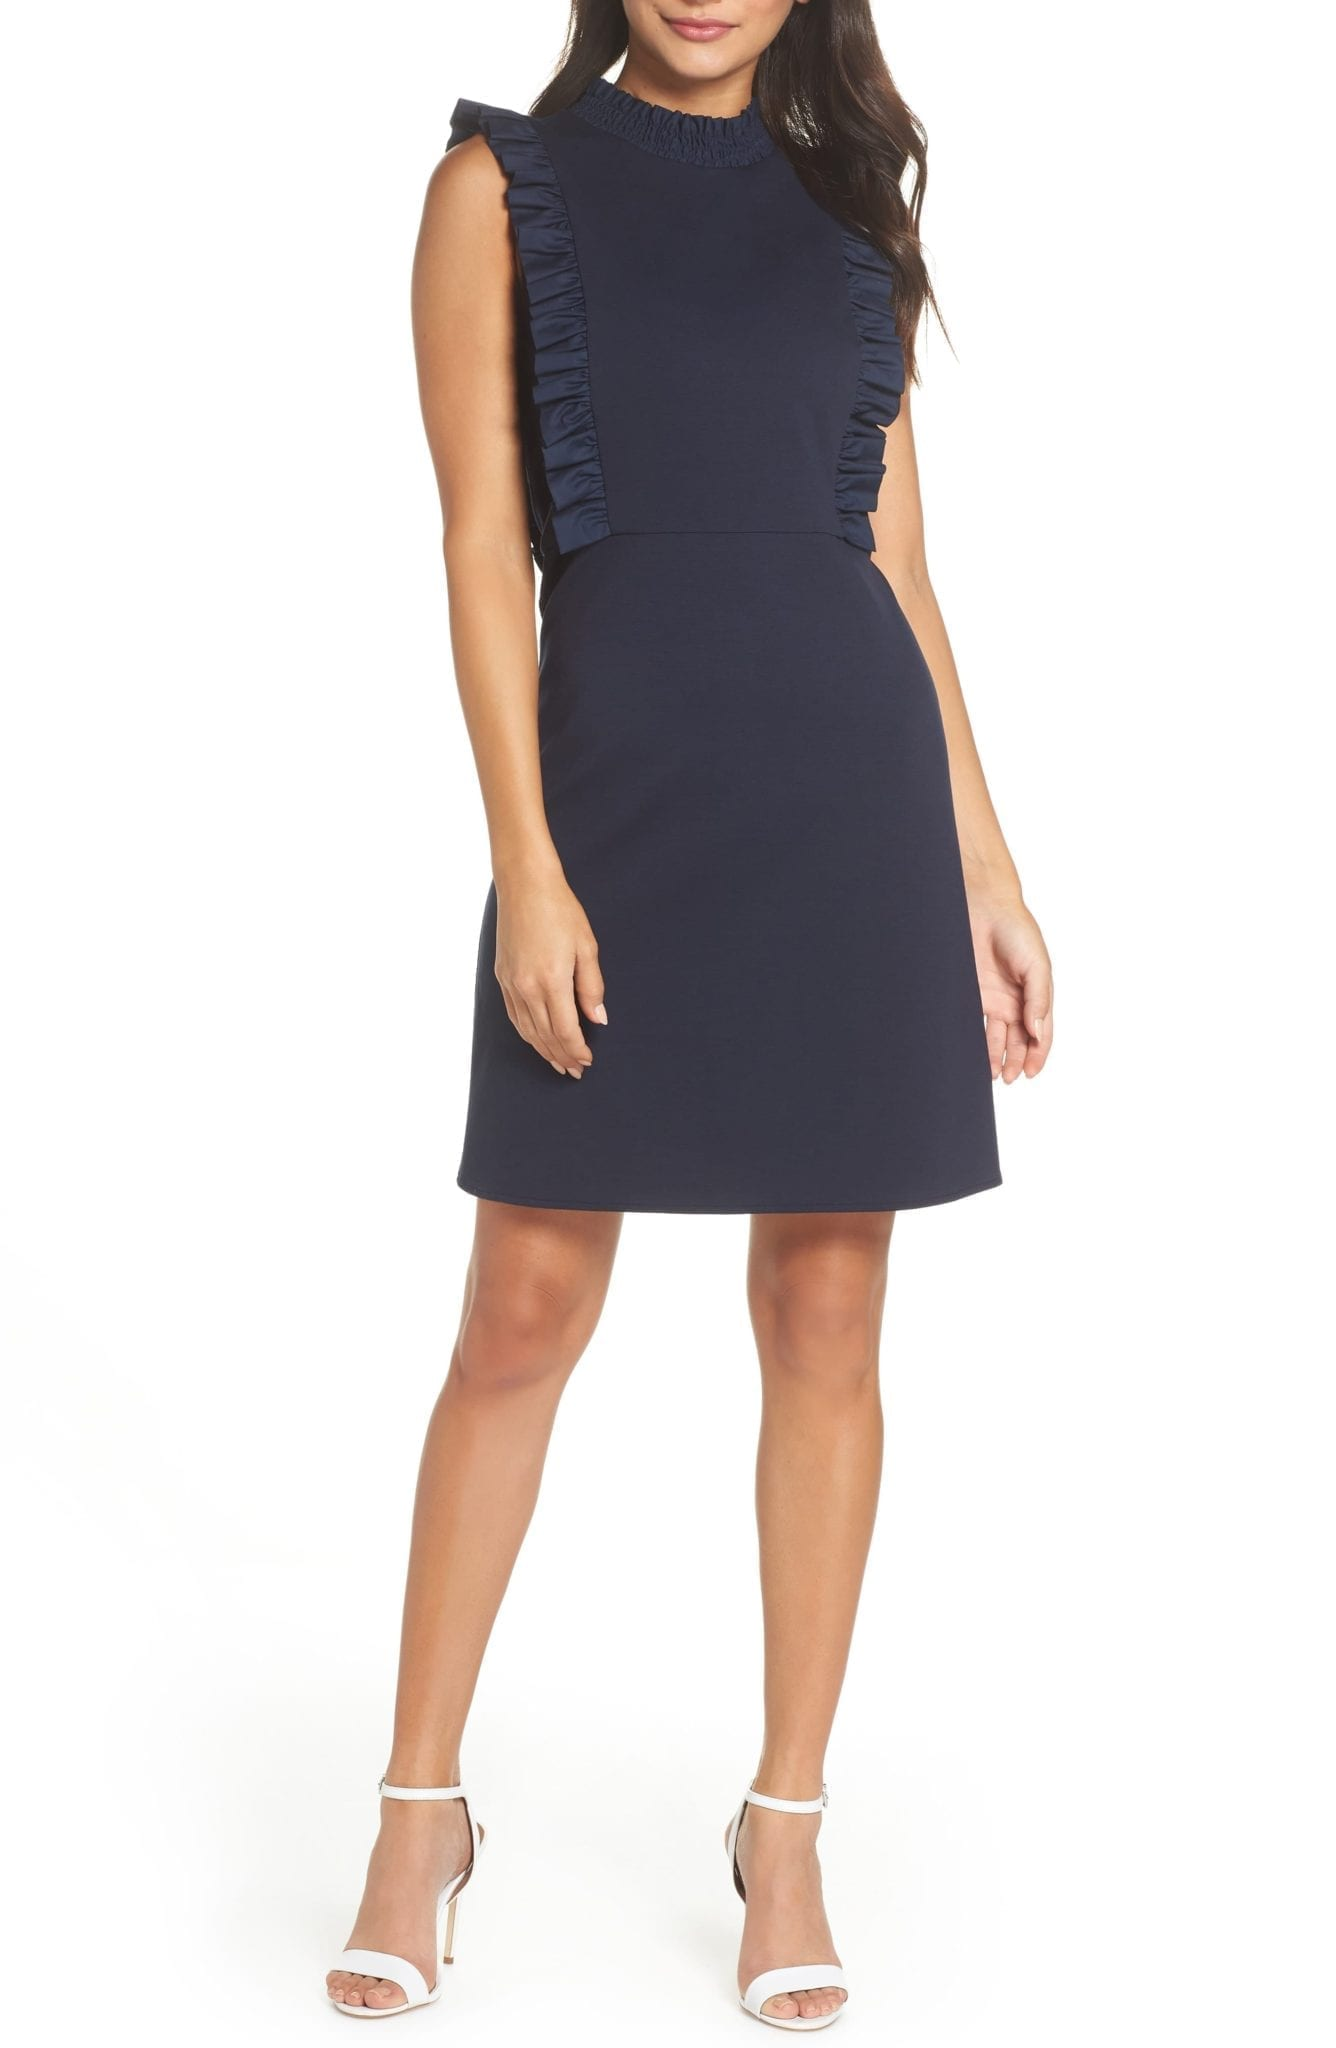 CHELSEA28 Ruffle Navy Dress